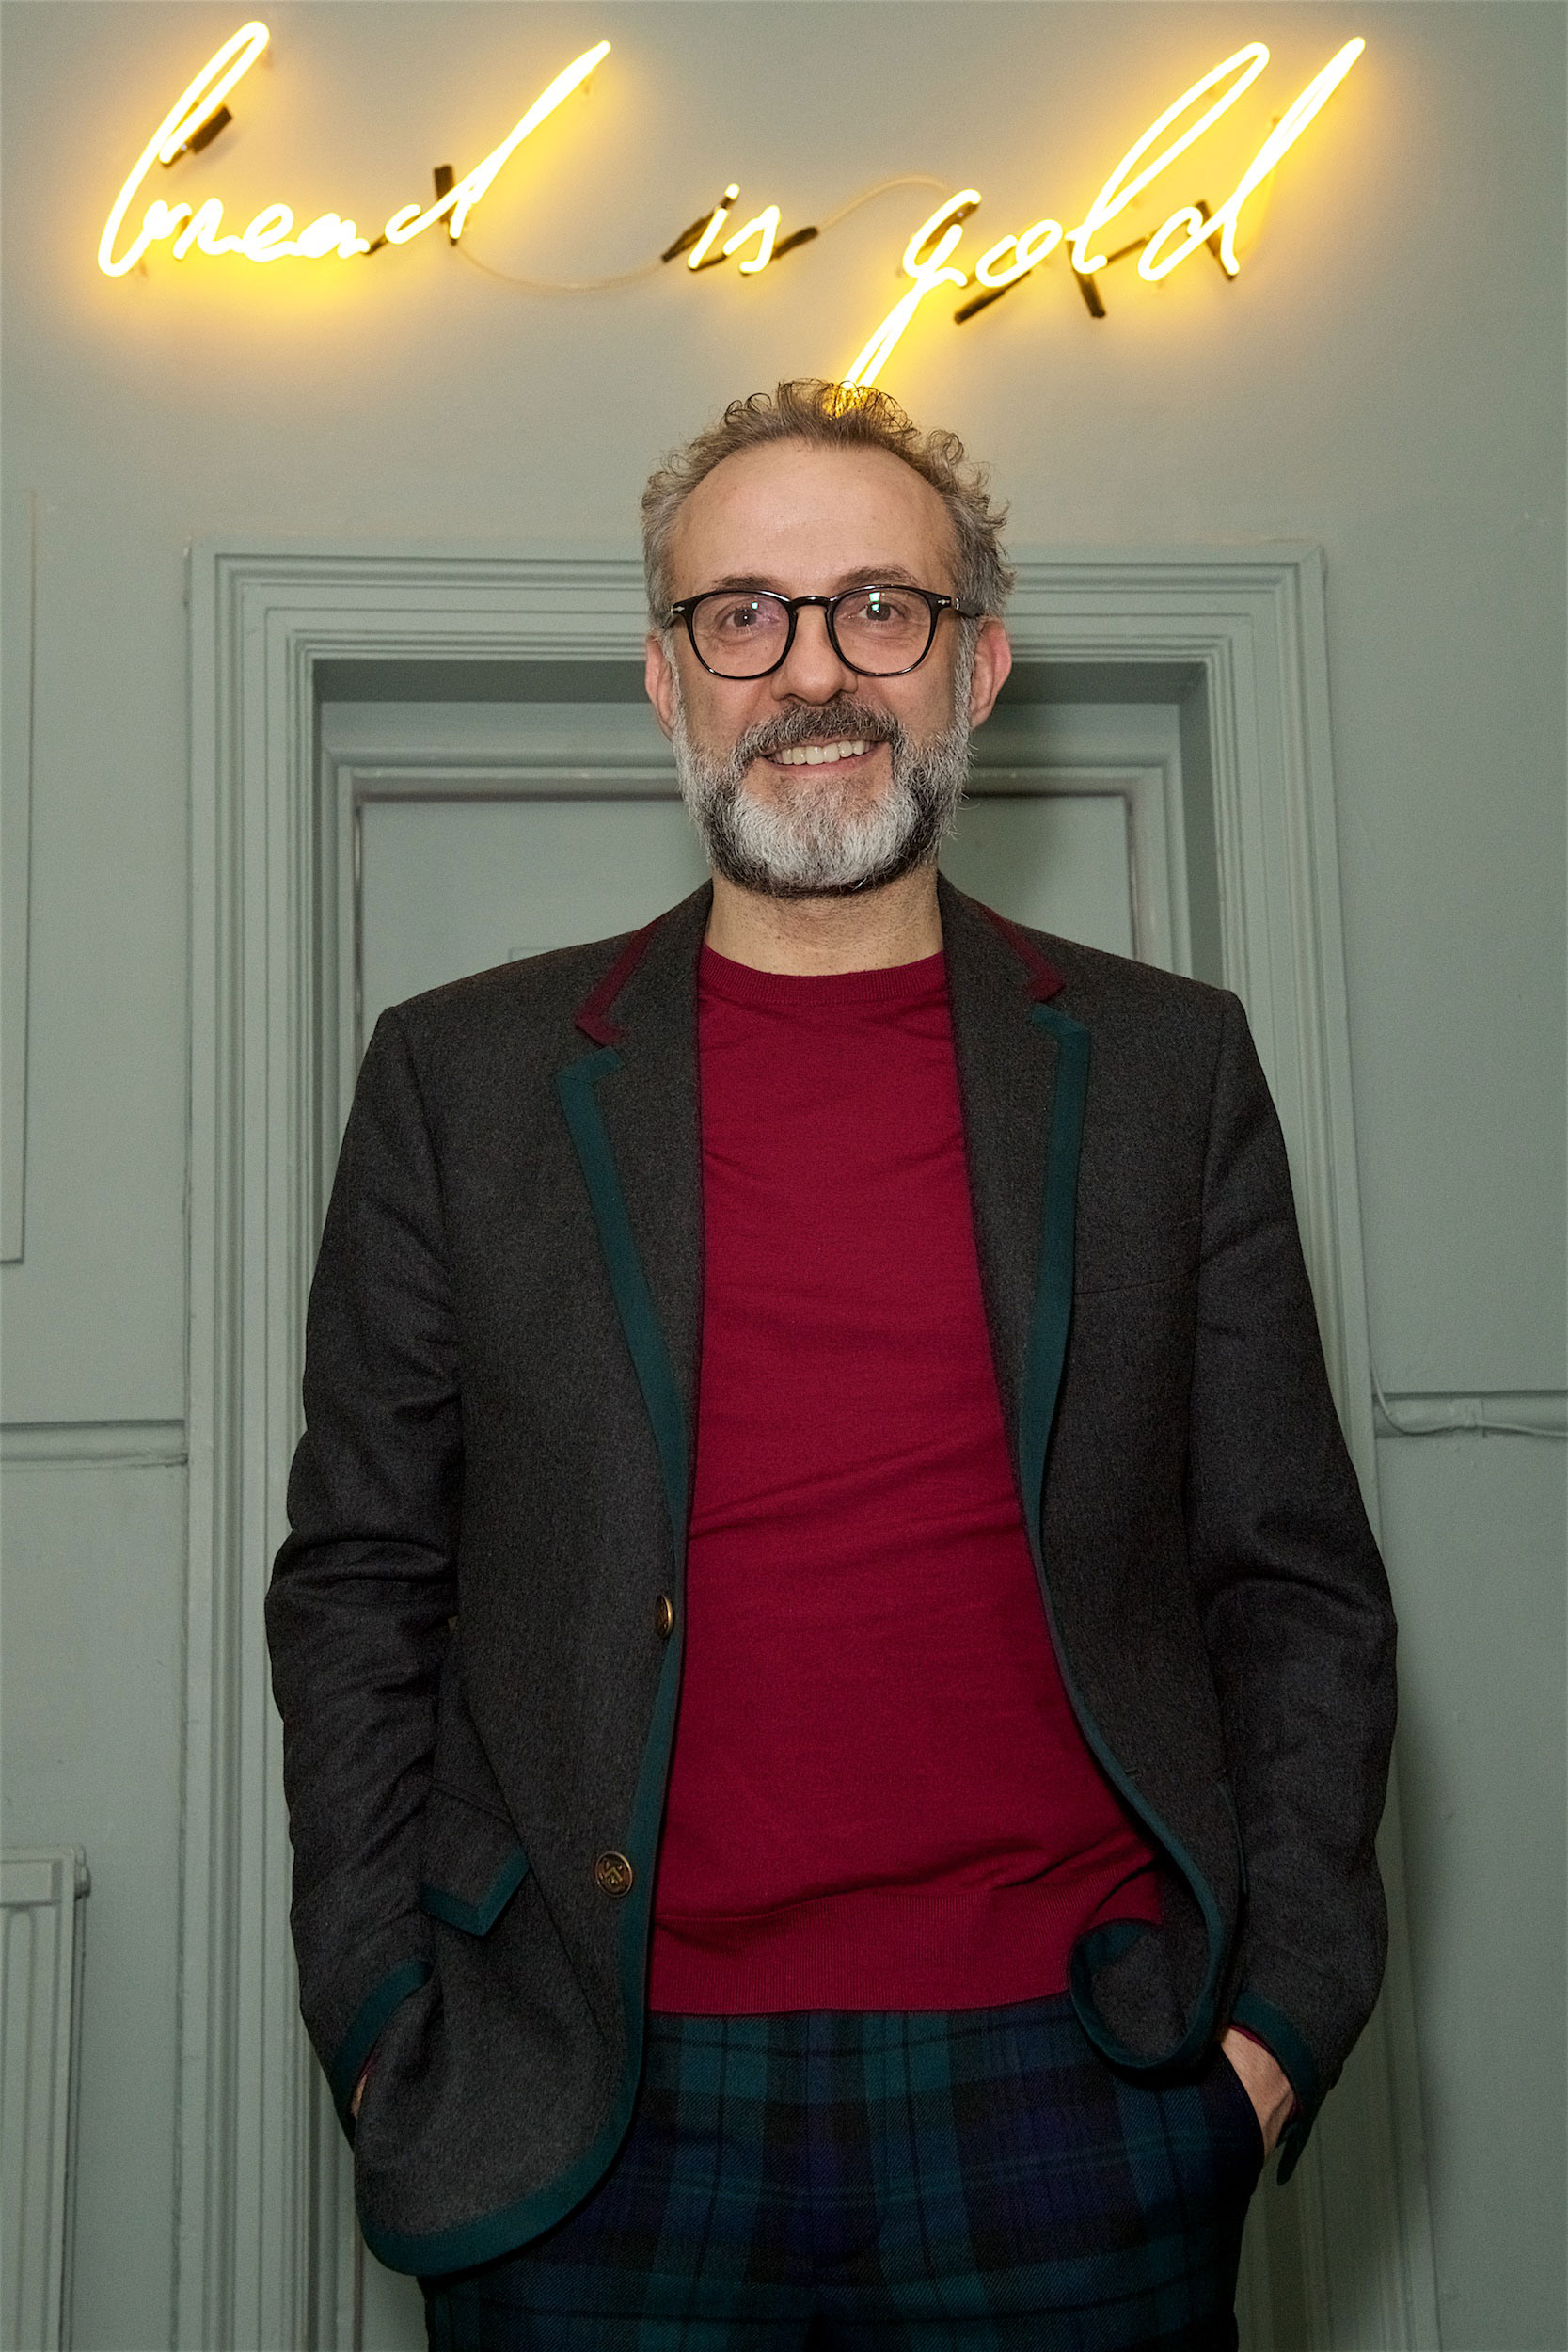 Massimo Bottura at Refettorio Felix December 2 2017 - photo by James Mason